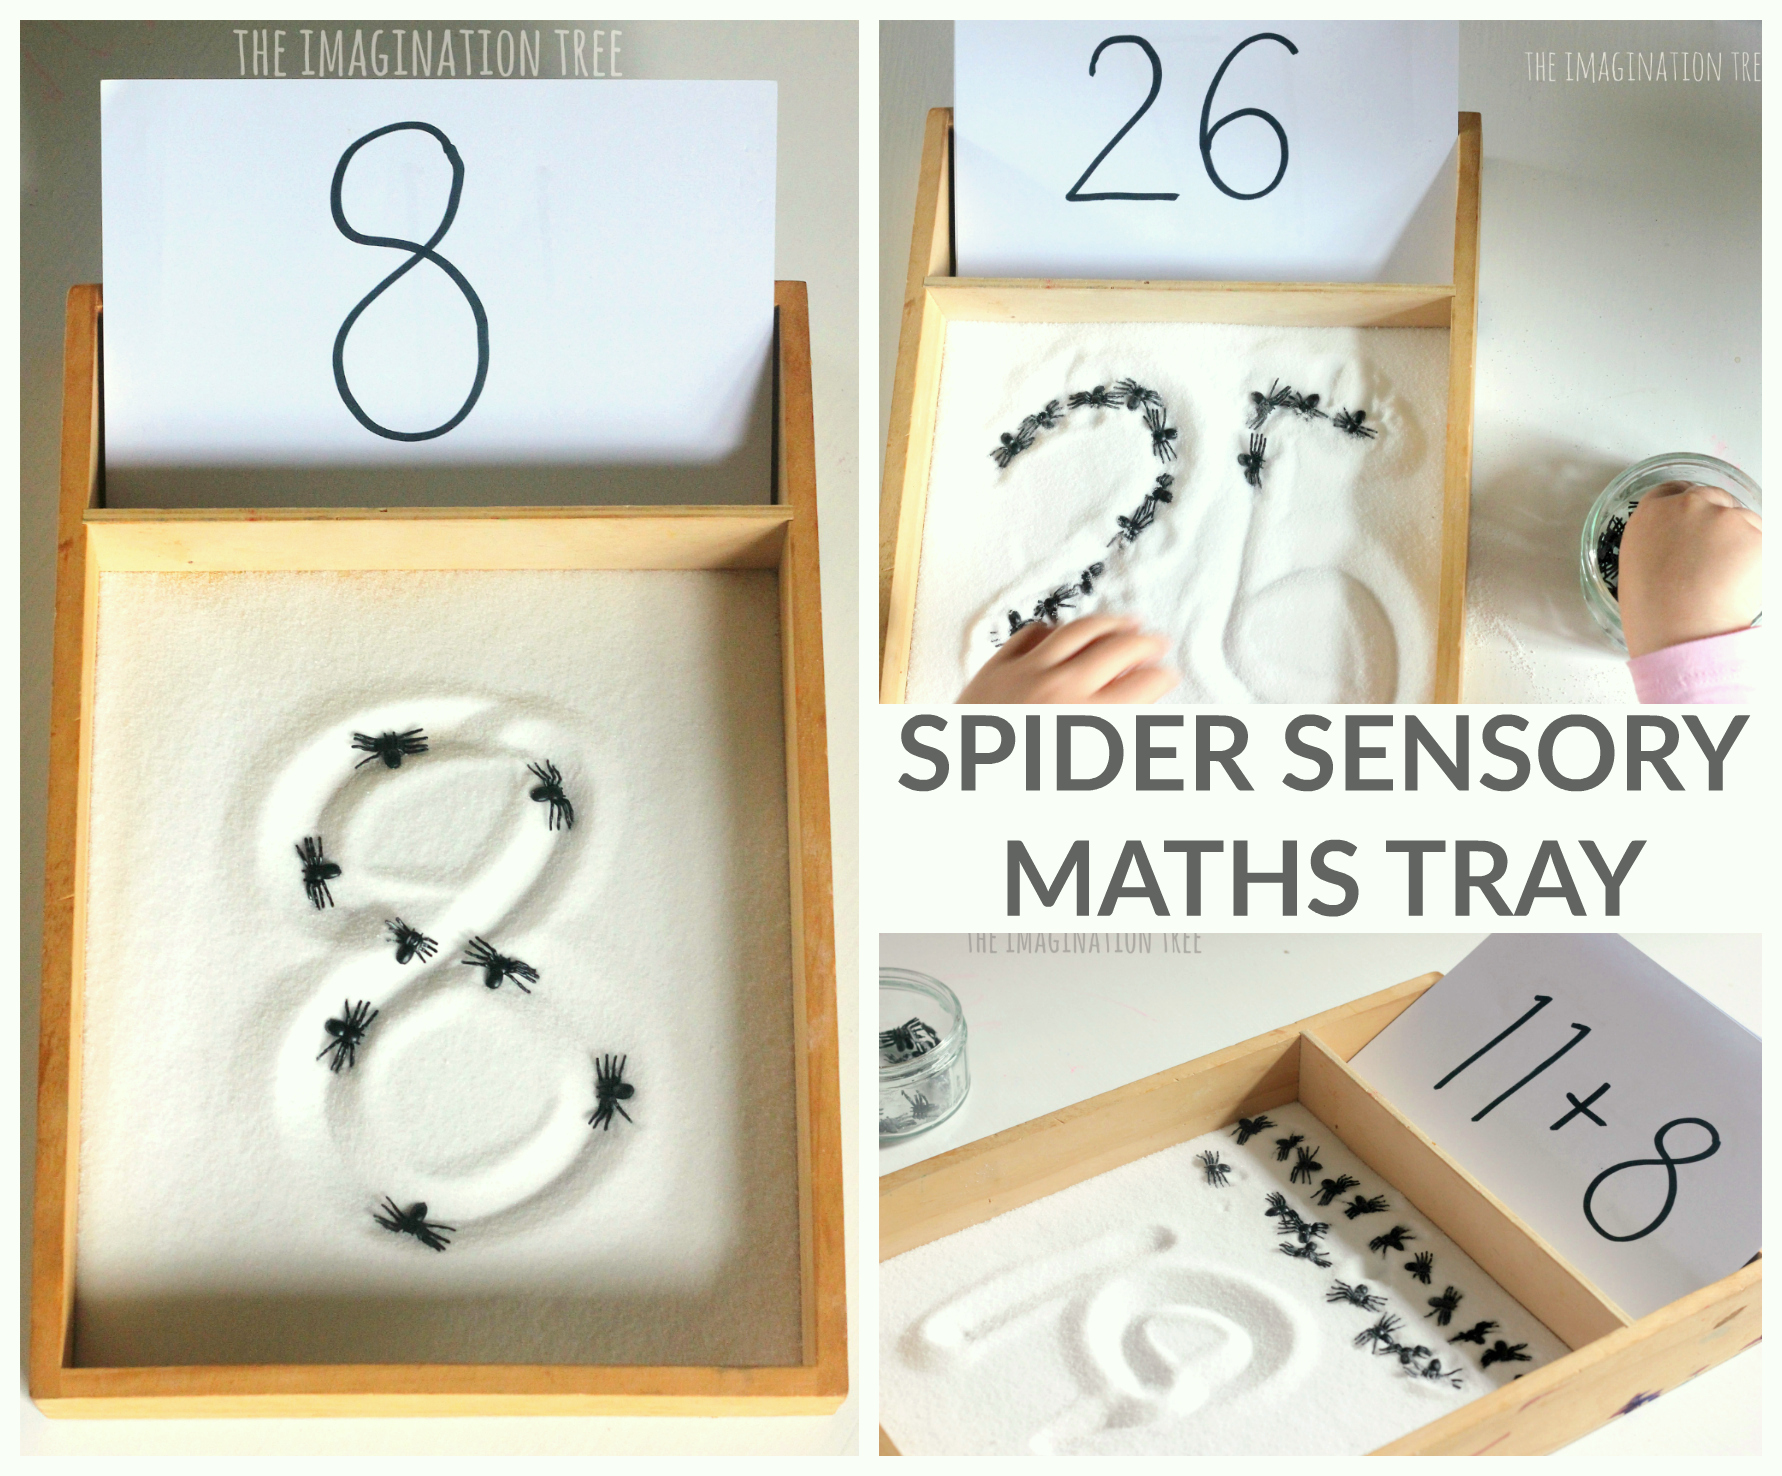 Counting Spiders Sensory Maths Tray - The Imagination Tree